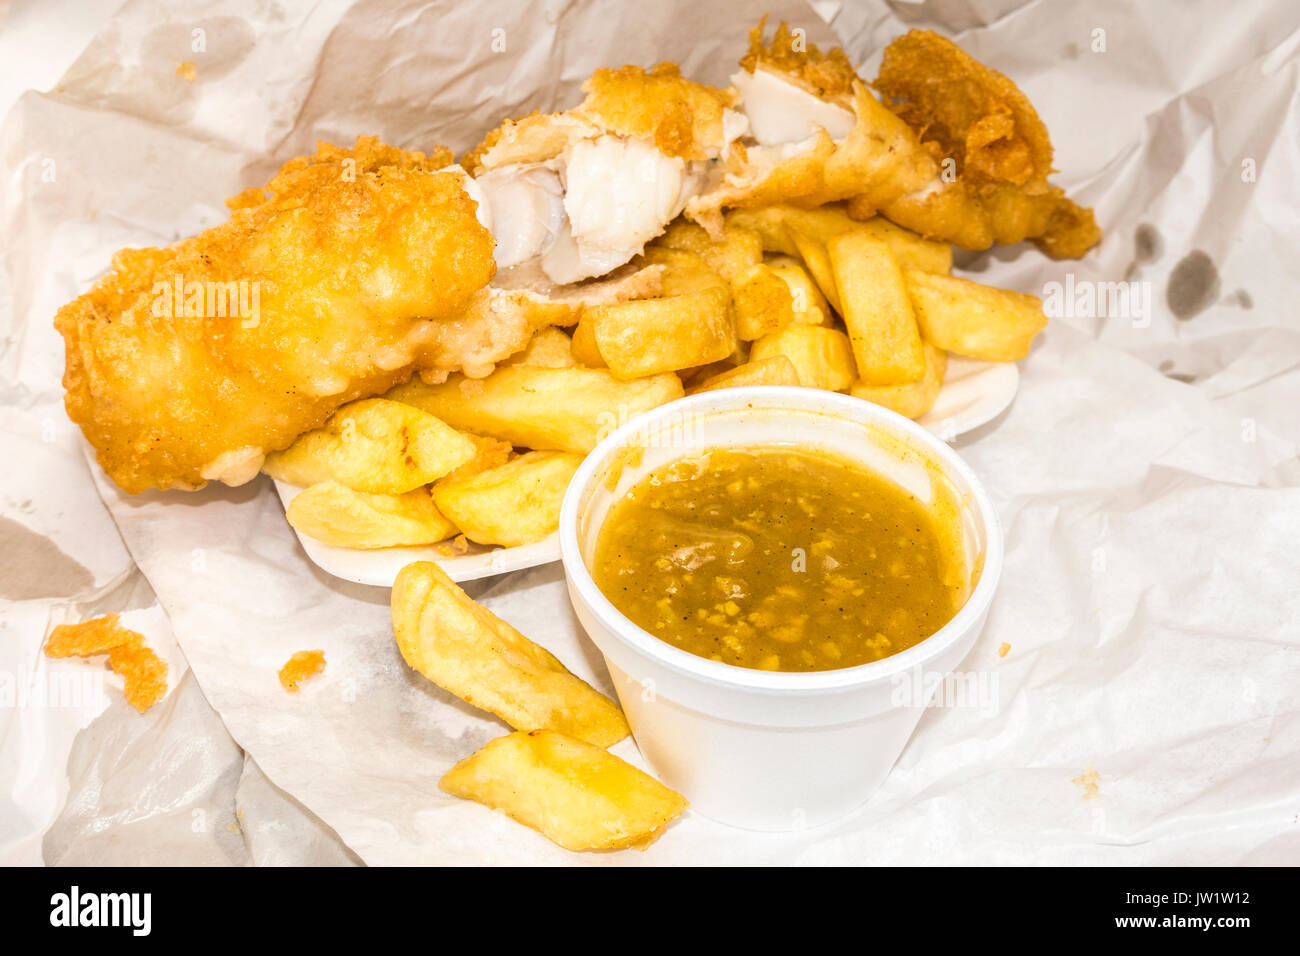 Traditional British takeaway meal of battered fish and chips, plus curry sauce in the containers and paper wrapping. - Stock Image